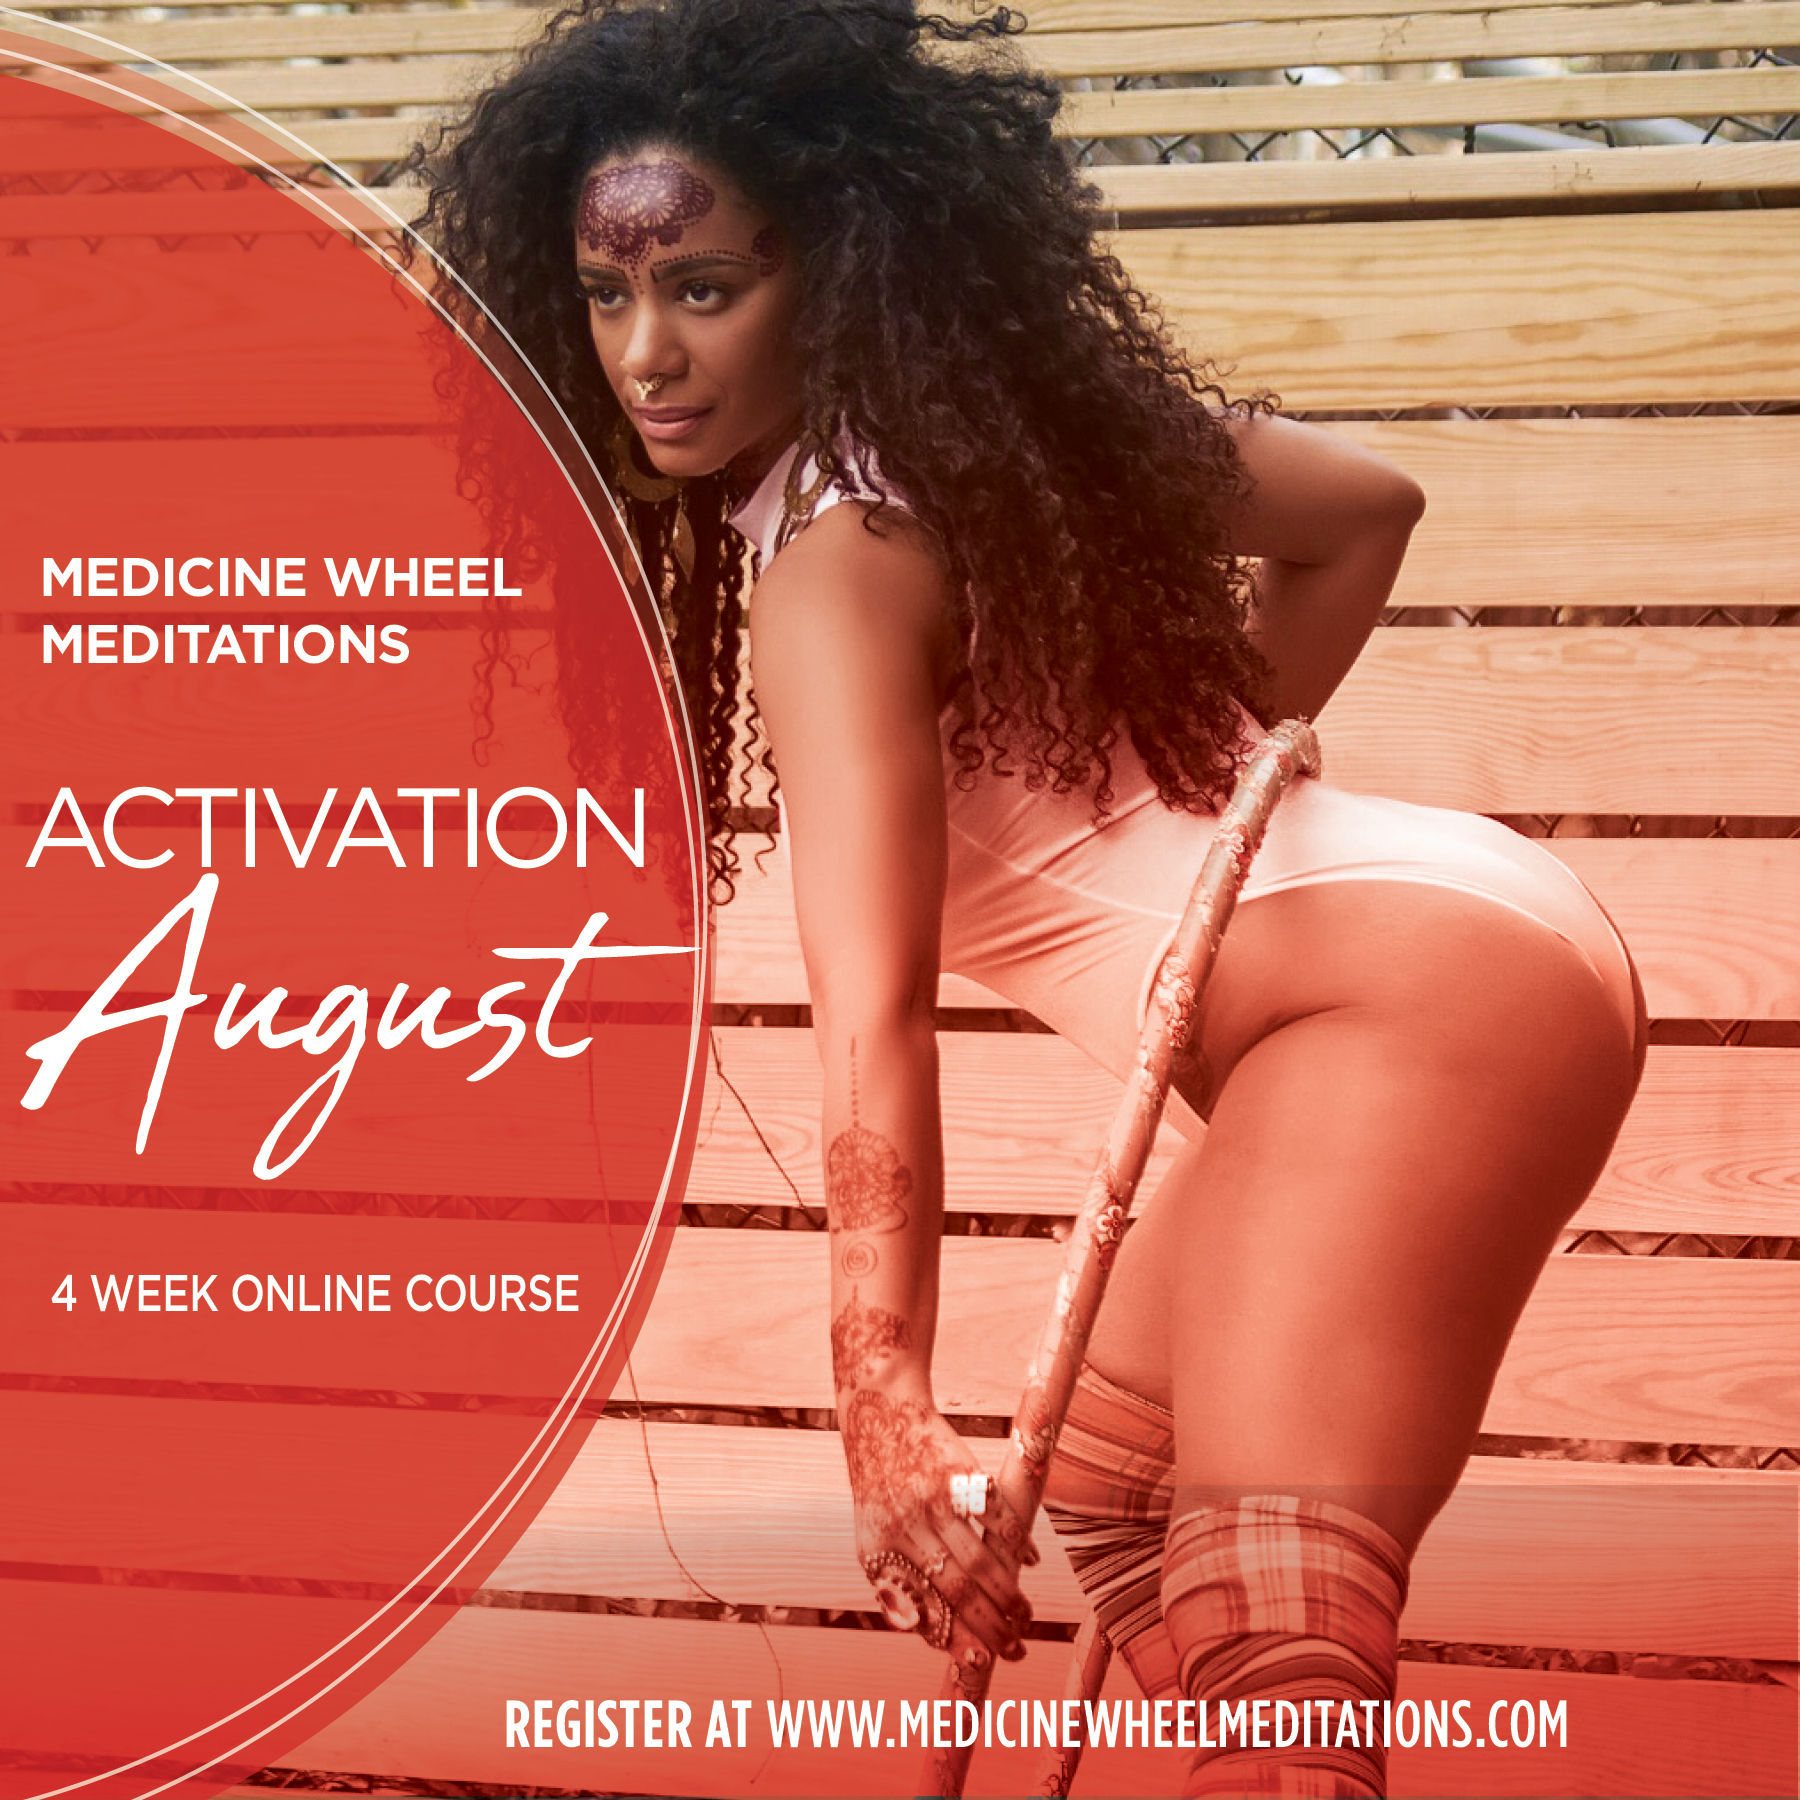 Medicine Wheel Meditations–Time for Activation August!